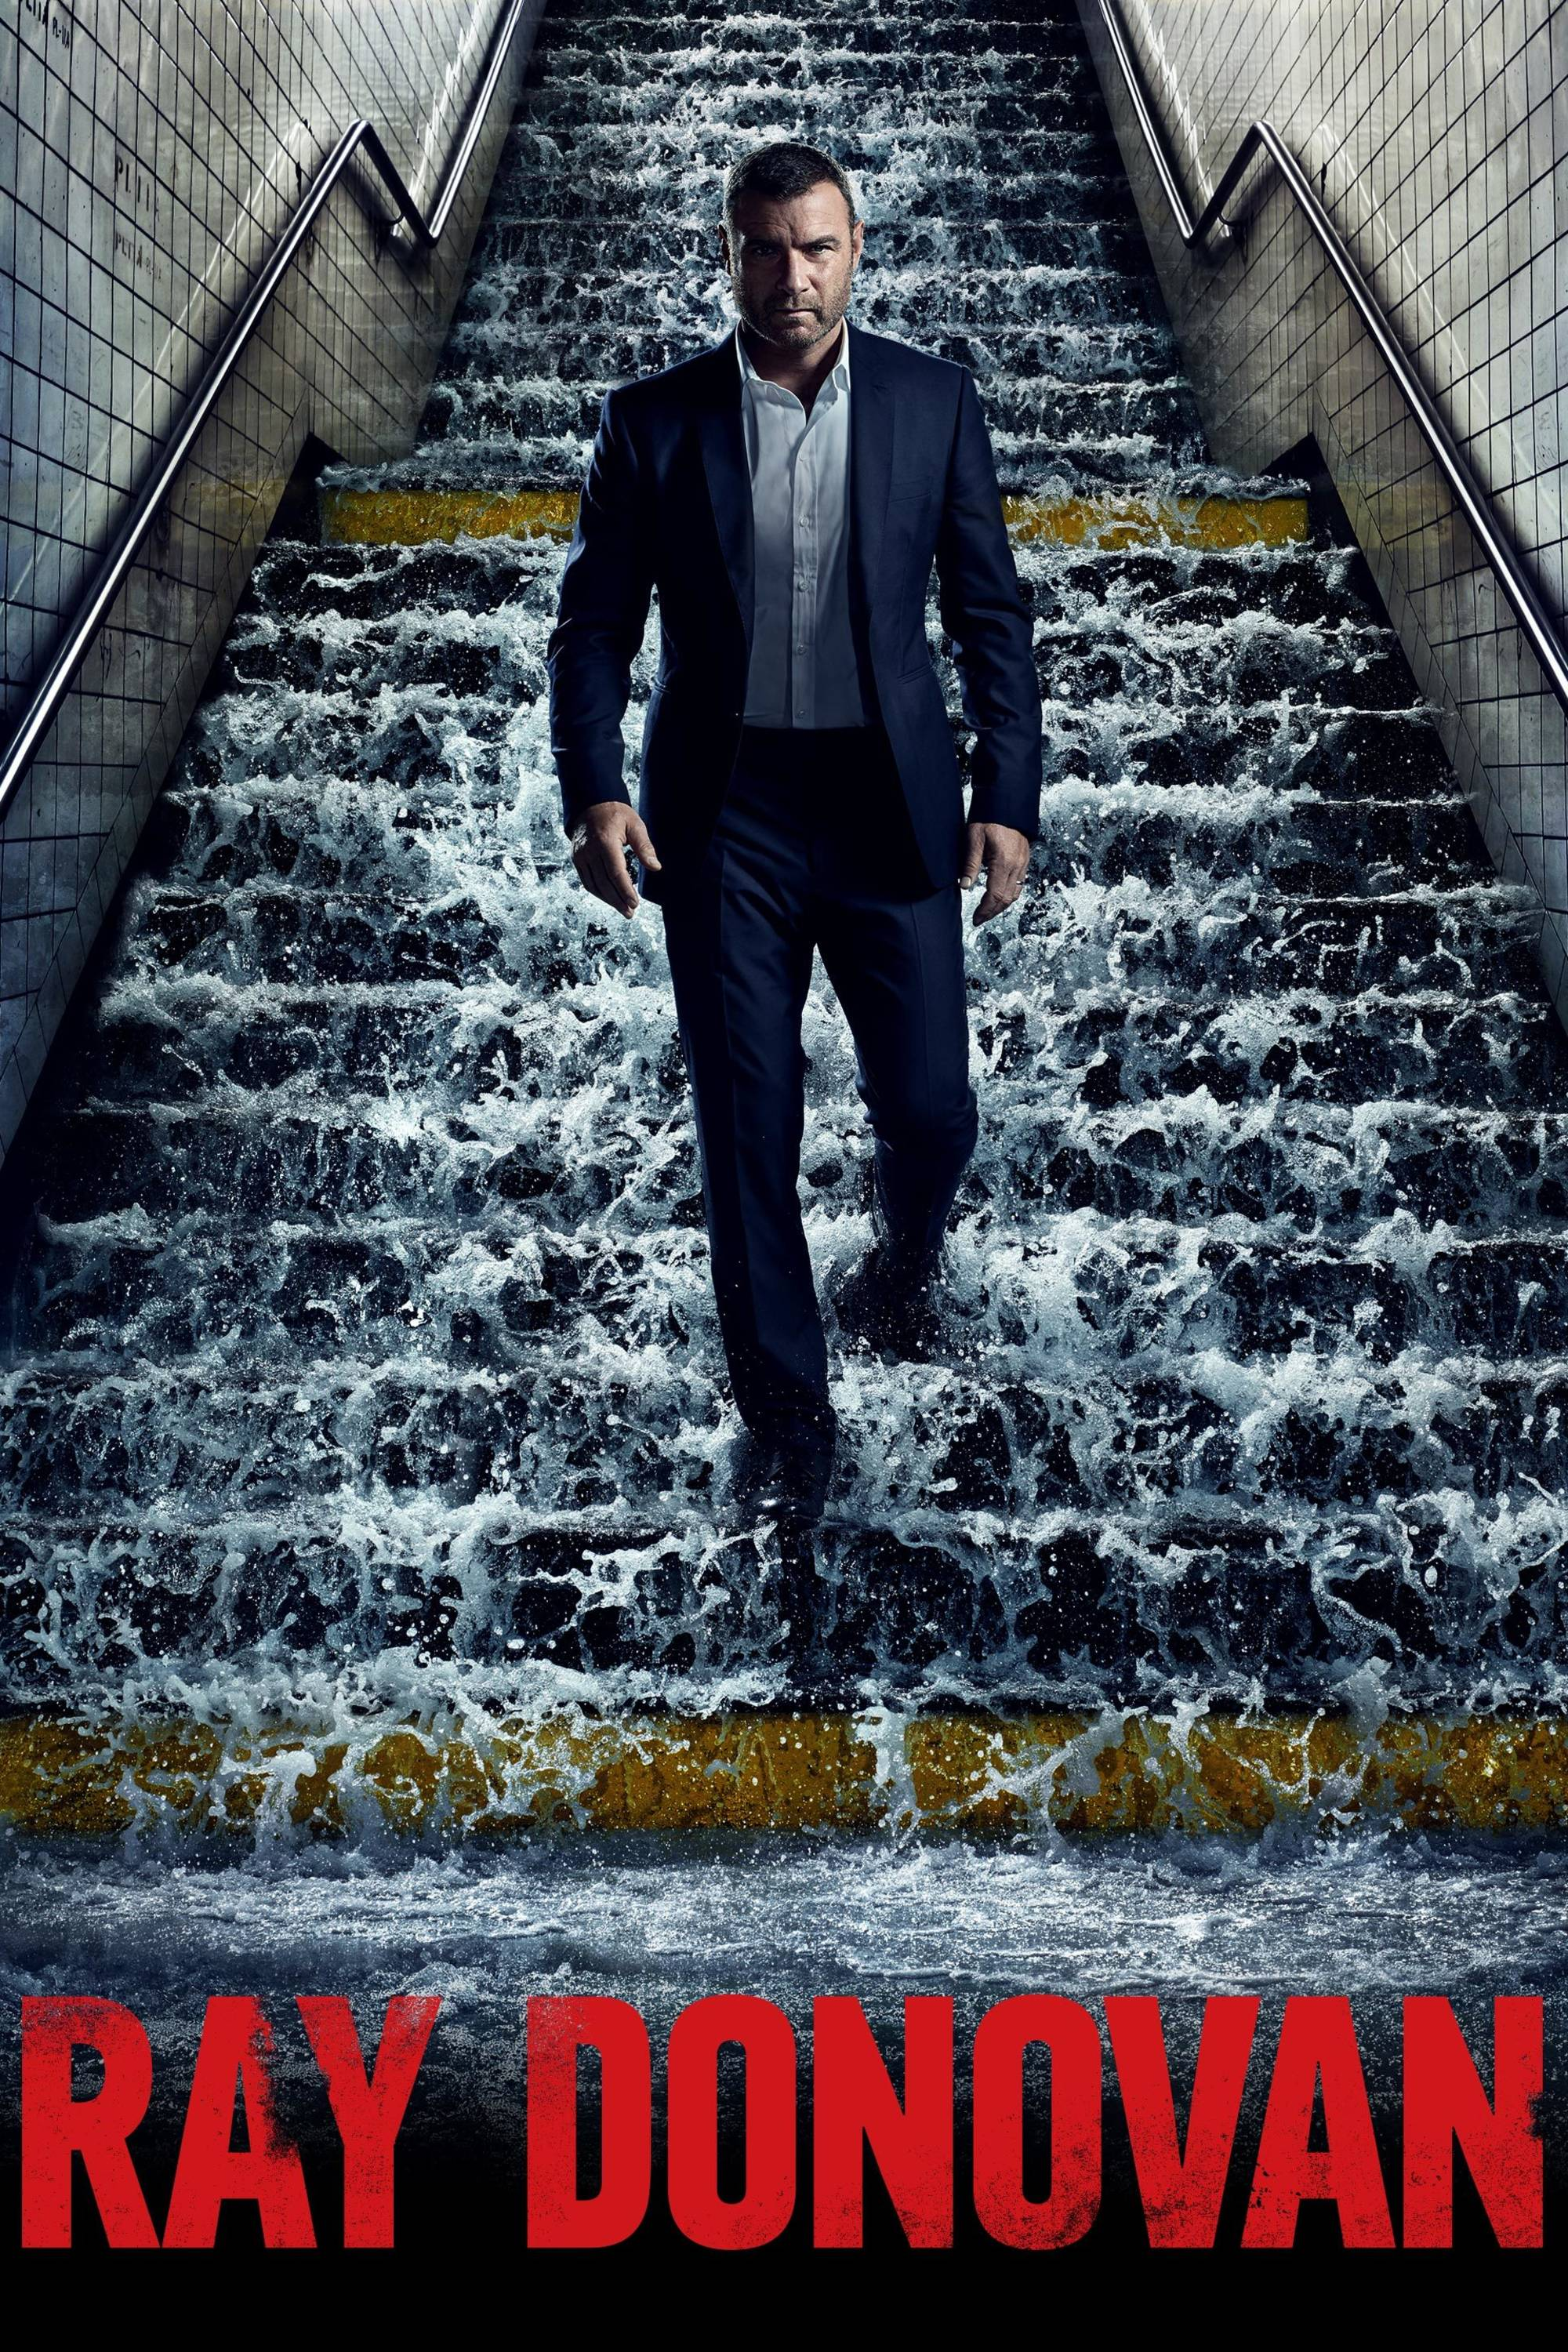 ray donovan season 6 episode 2 download